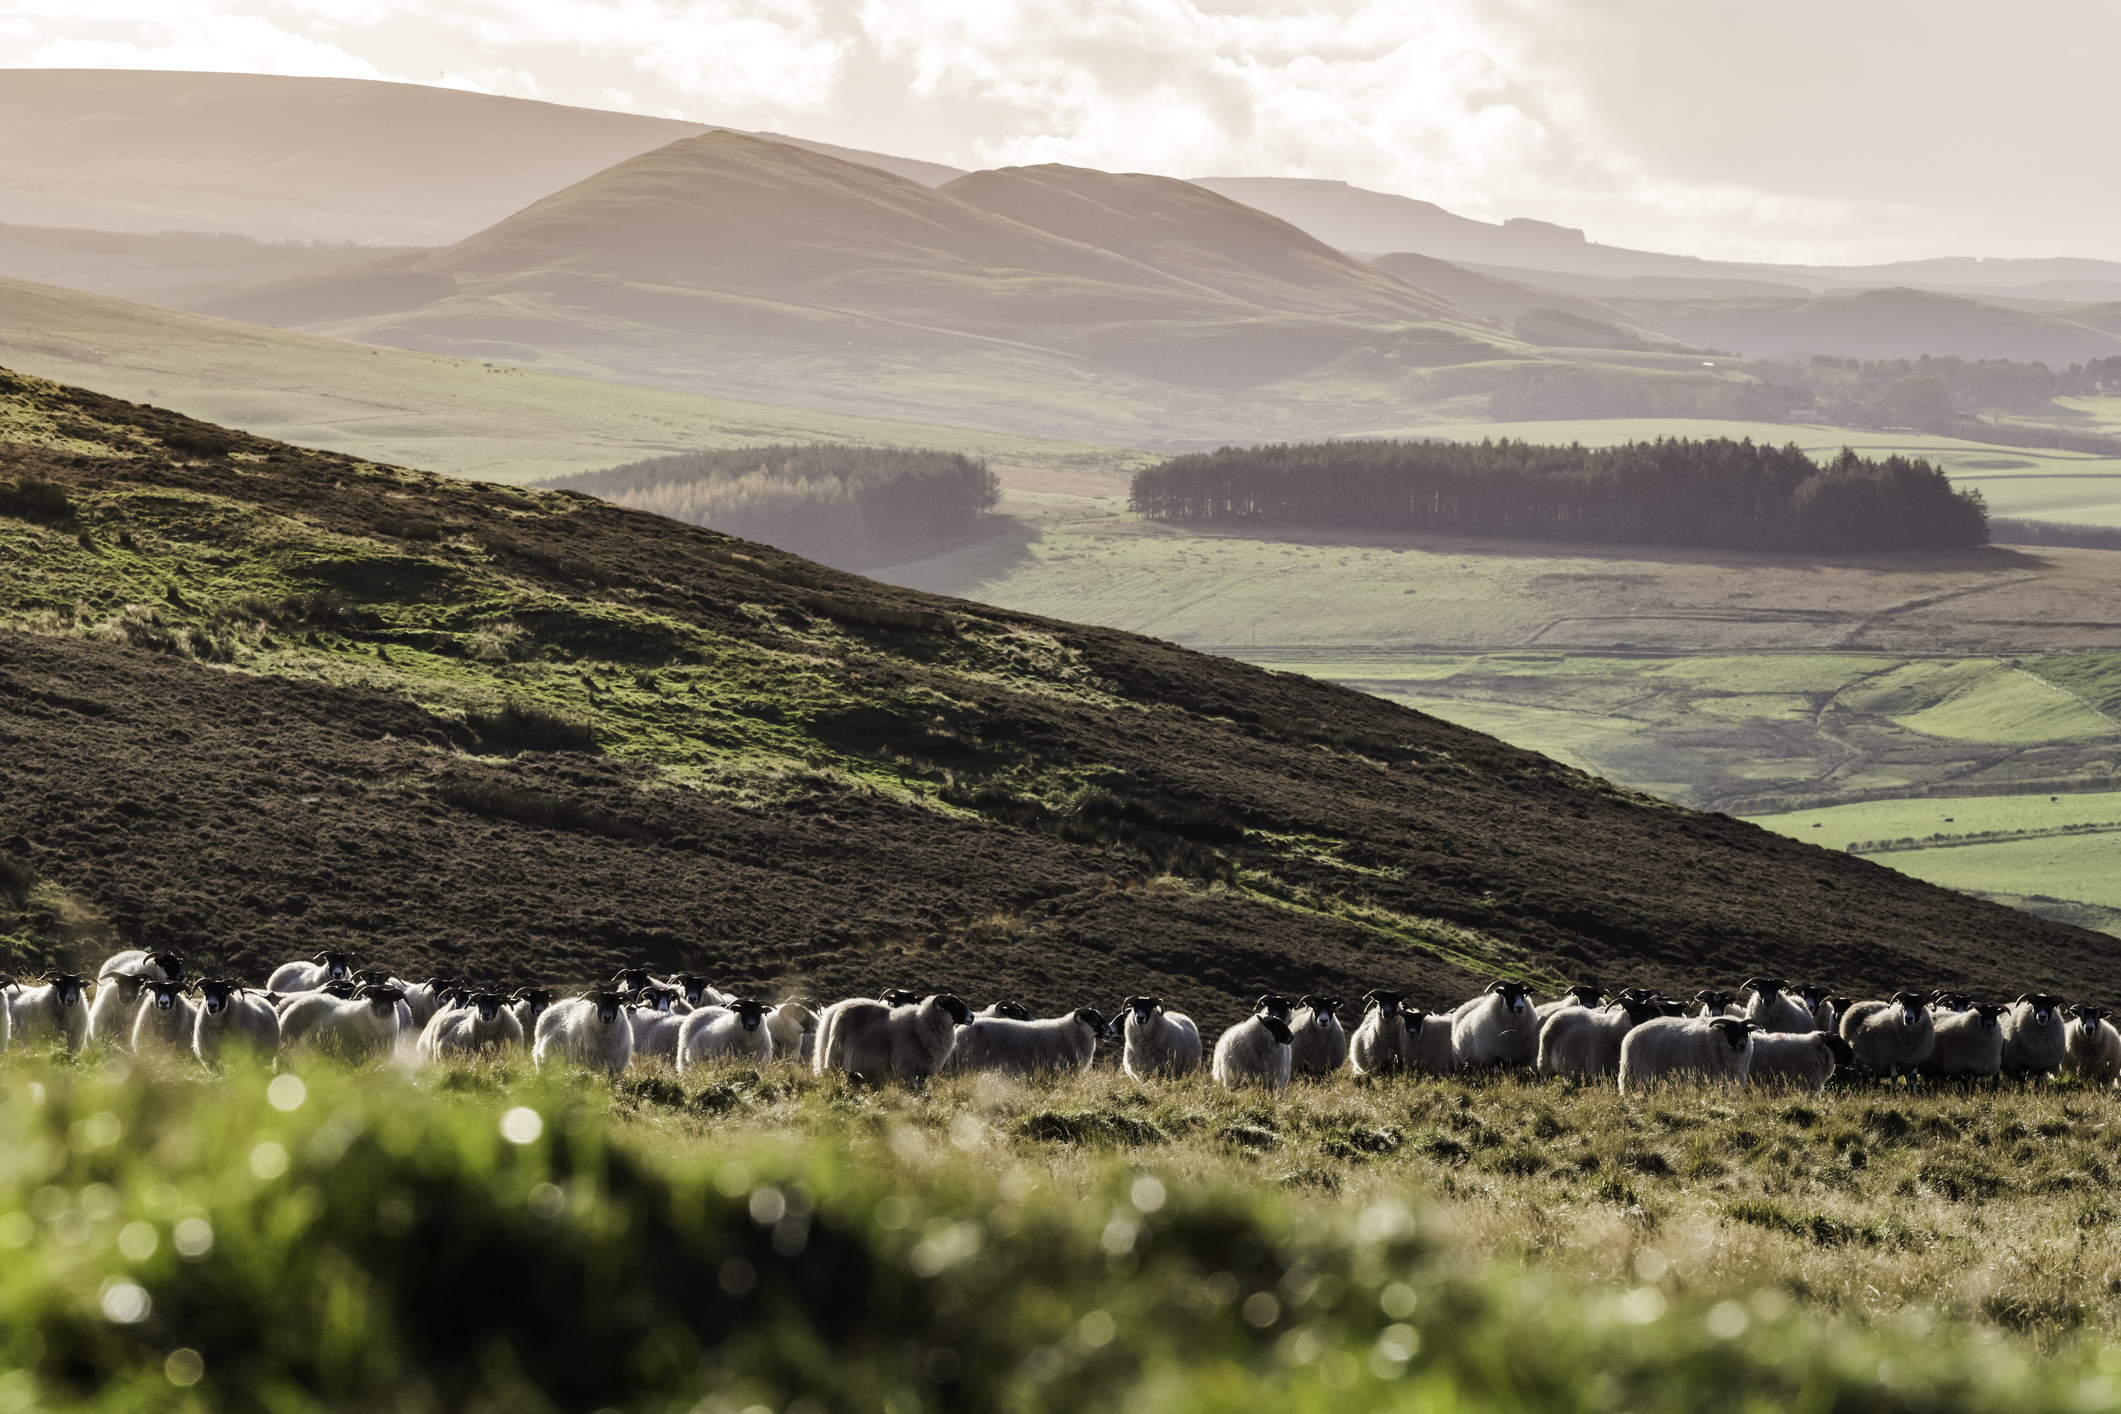 Scotland is on track to meet 2020 biodiversity targets with improvements to peatlands, rivers and woodlands.